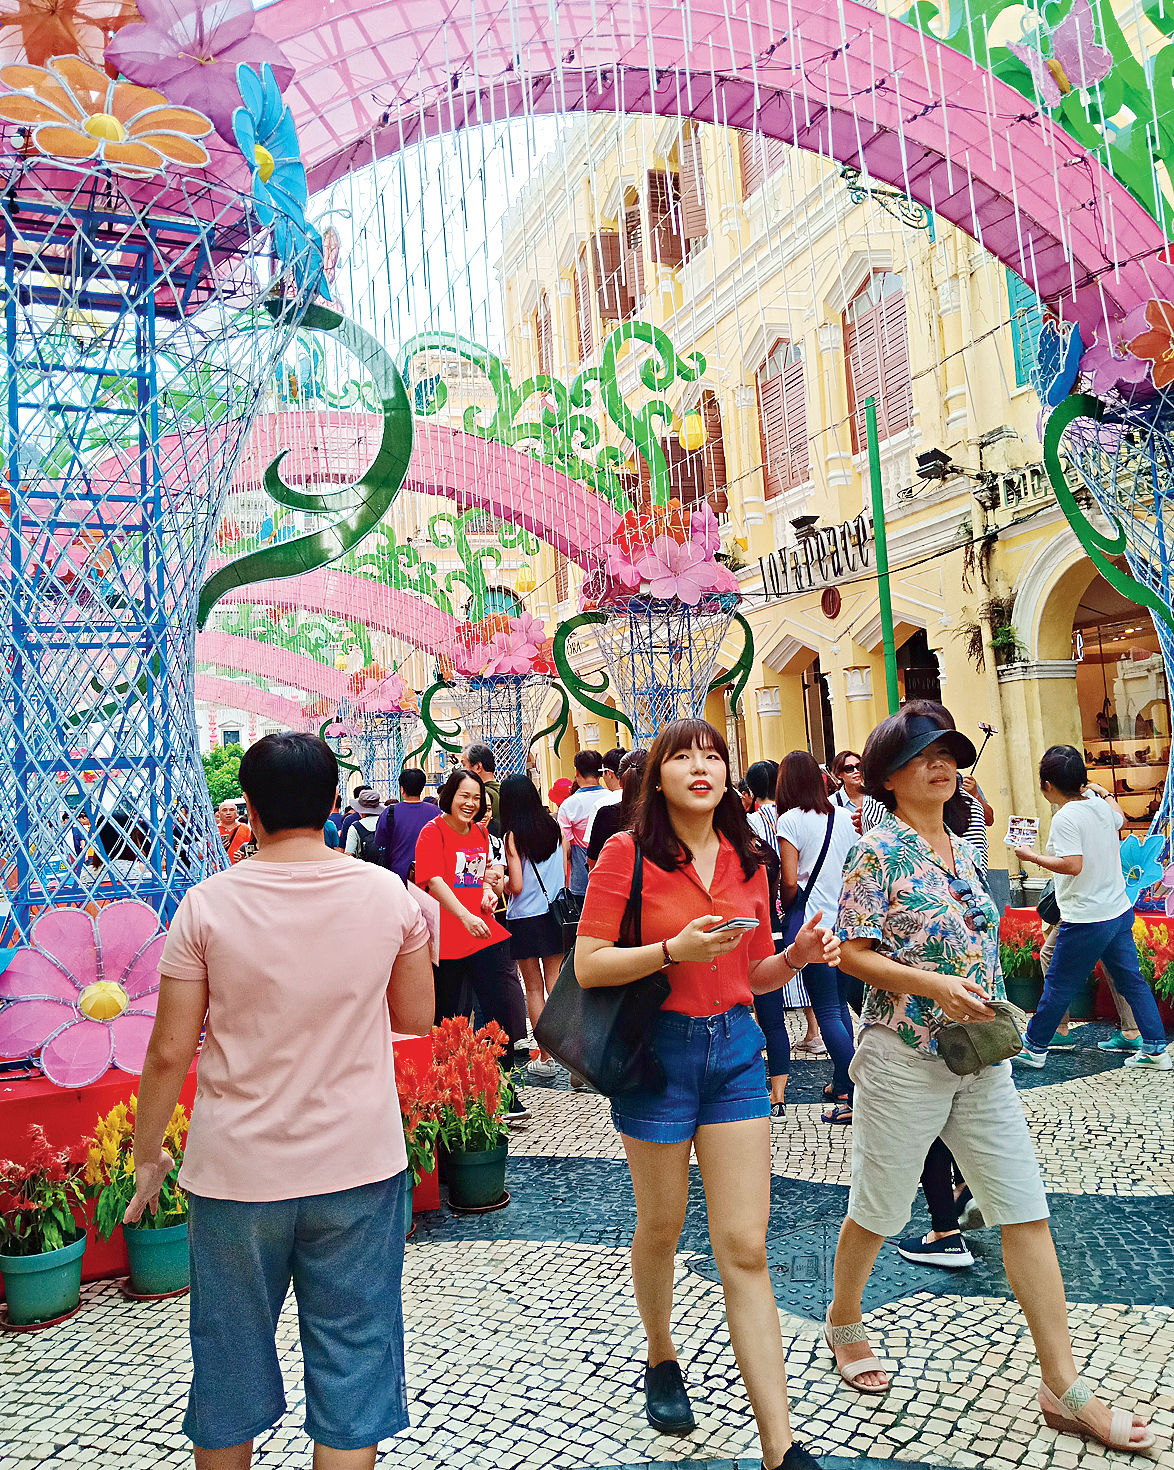 Senado Square: Macao's primary shopping district has some of the world's biggest brands jostling for space